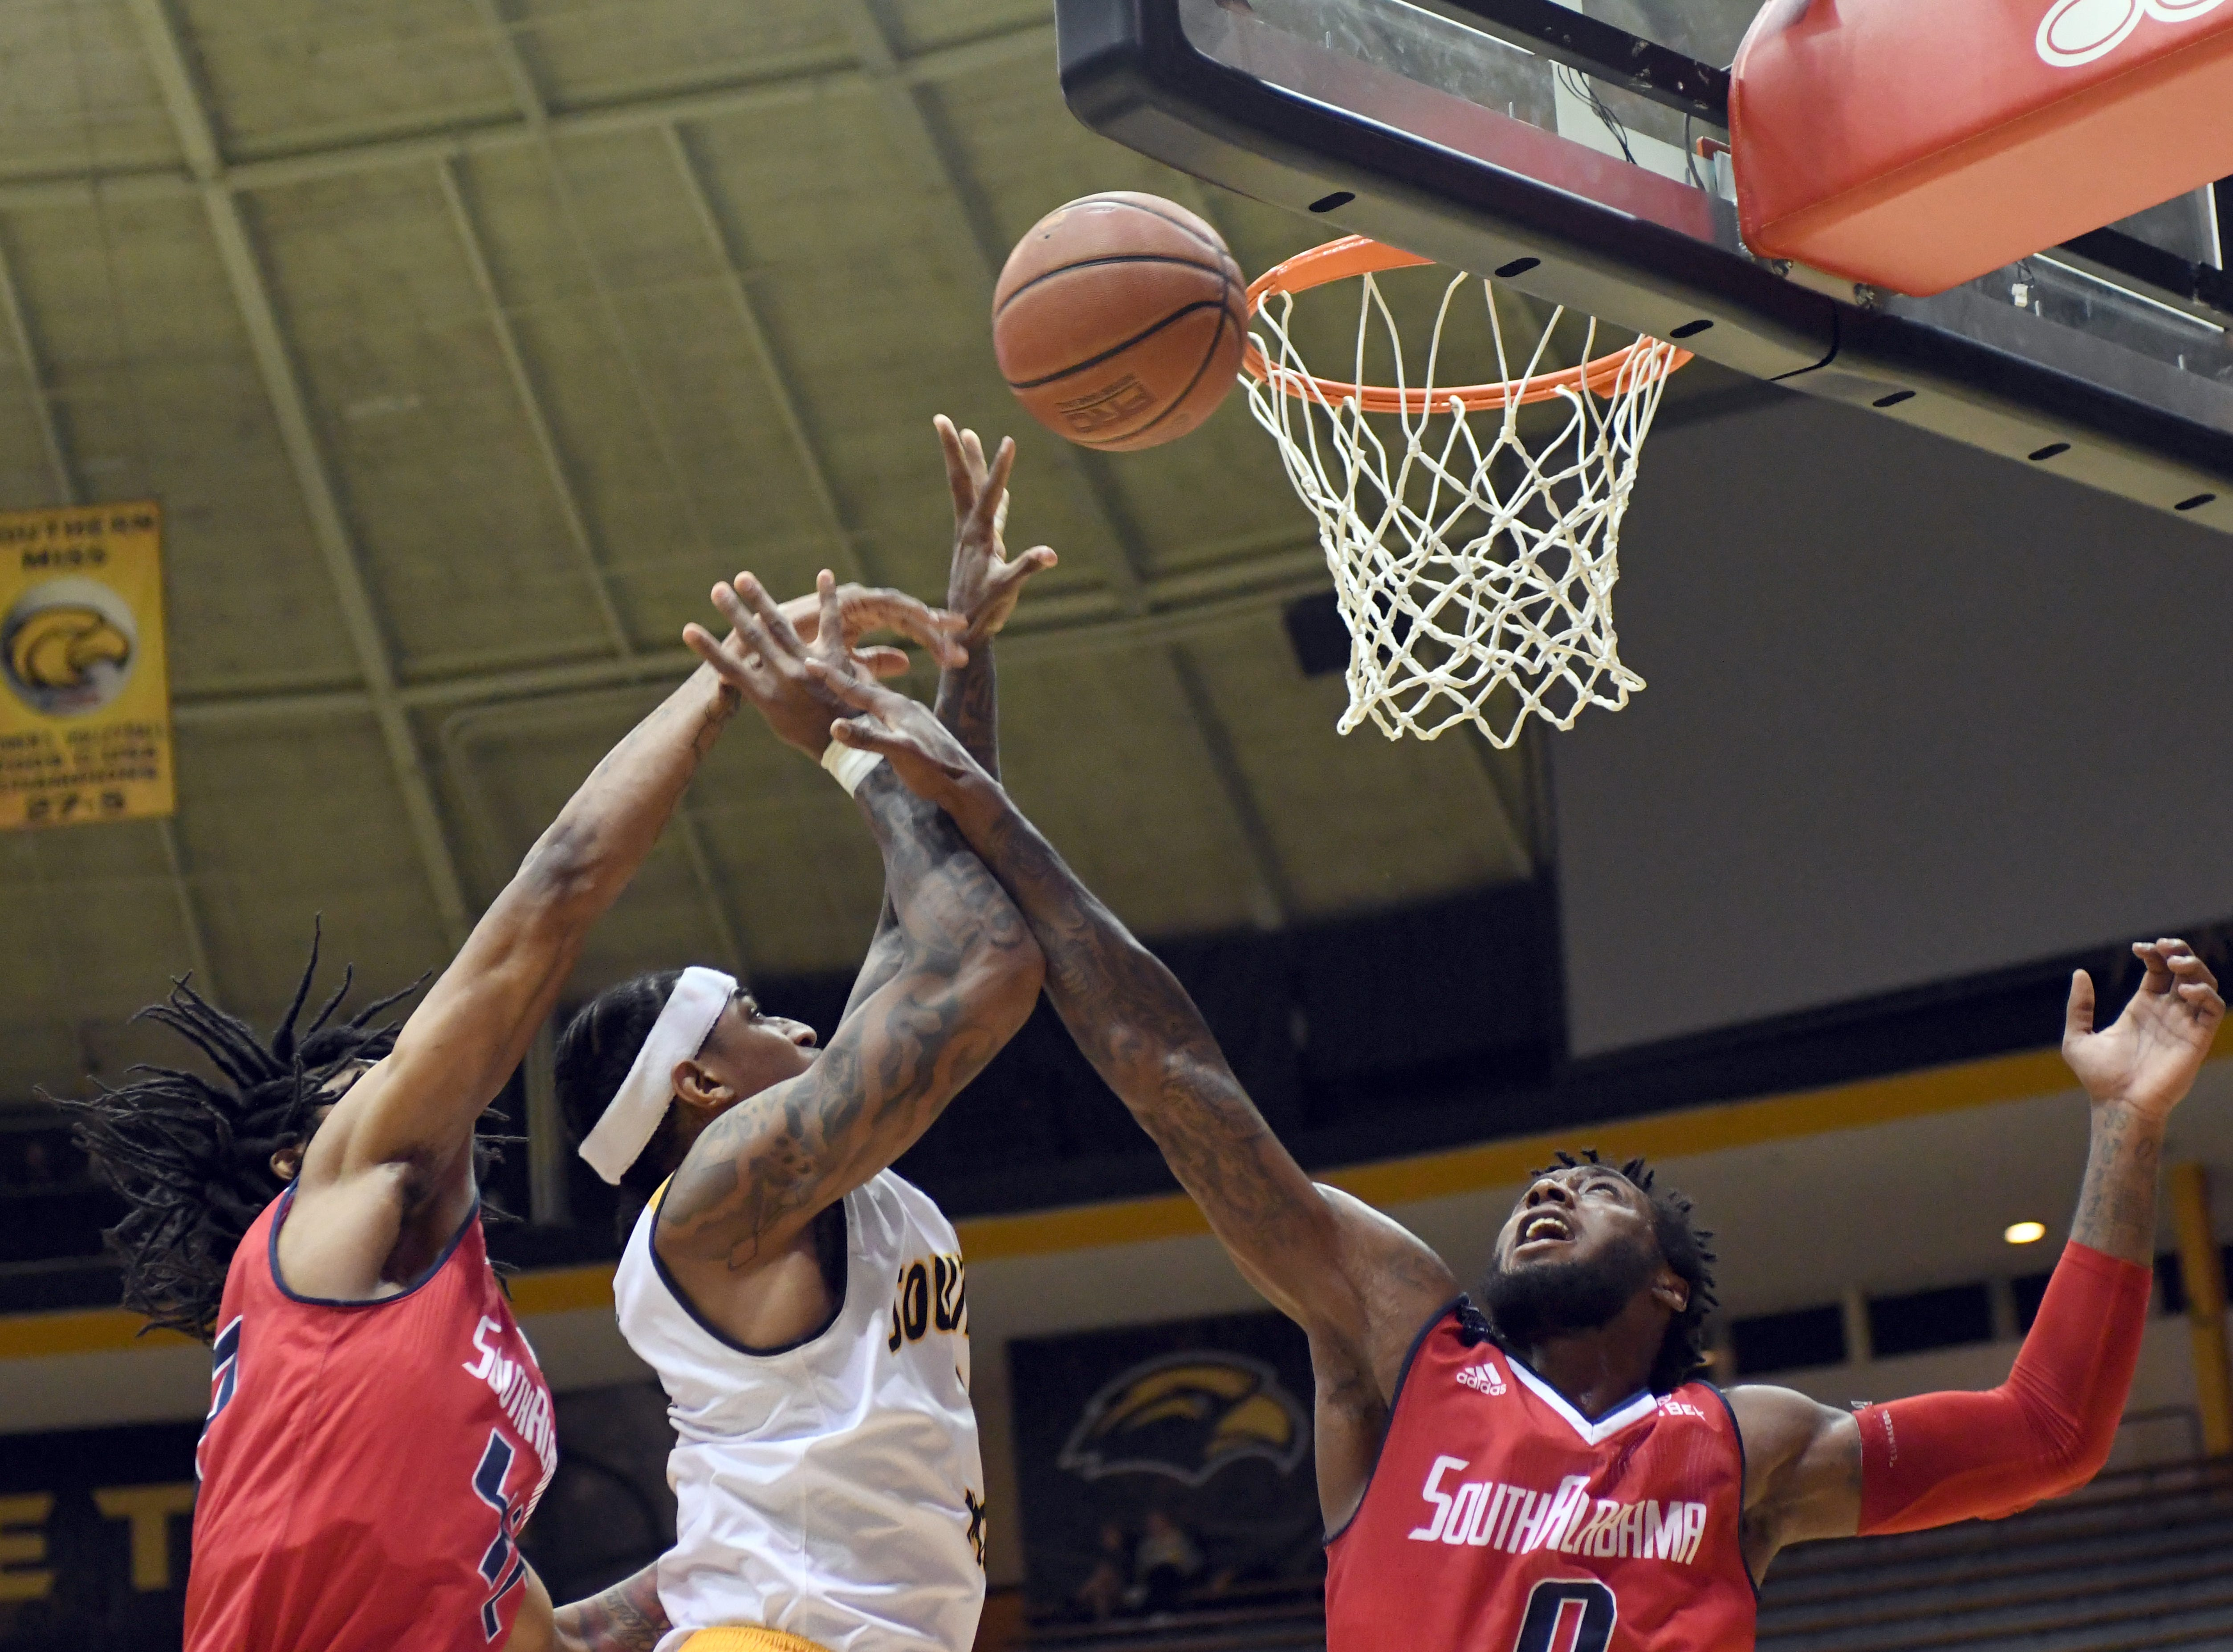 Southern Miss guard Dominic Magee shoots for the basket in a game against South Alabama in Reed Green Coliseum on Wednesday, November 28, 2018.